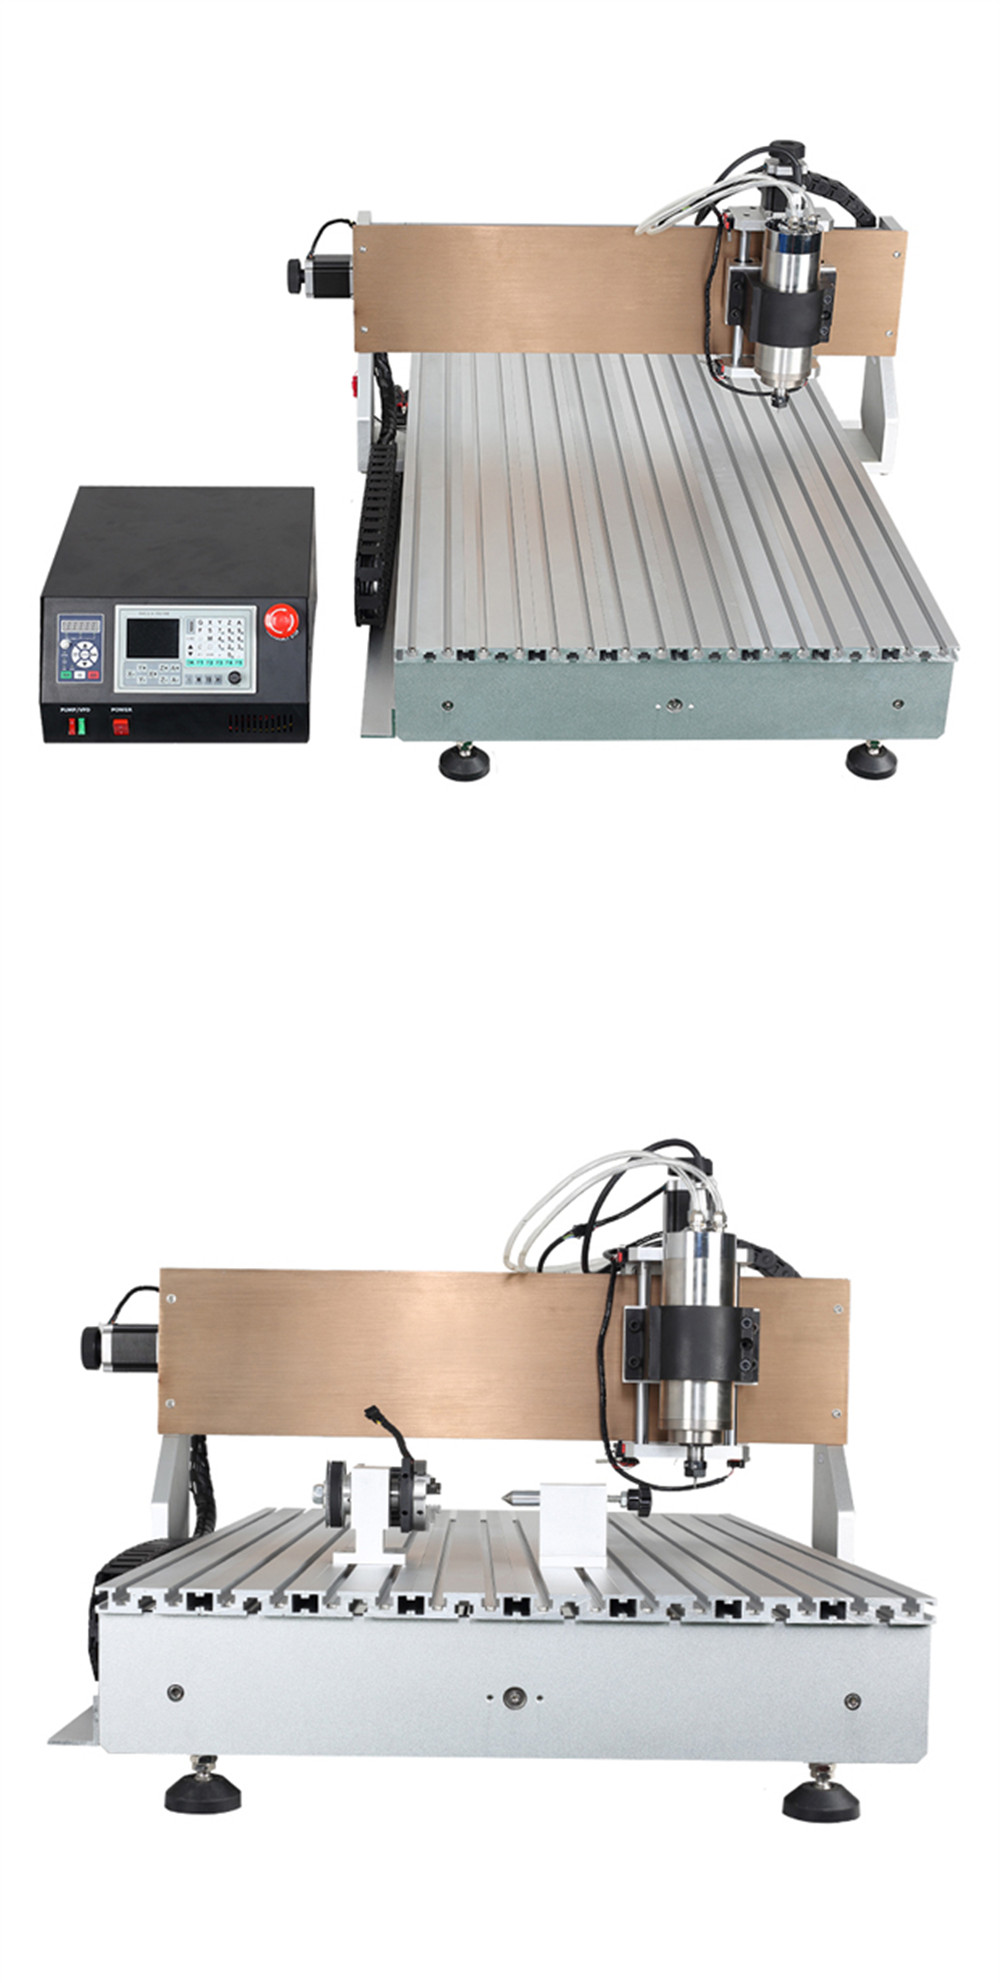 DSP System mini 6090 cnc router Milling Machine